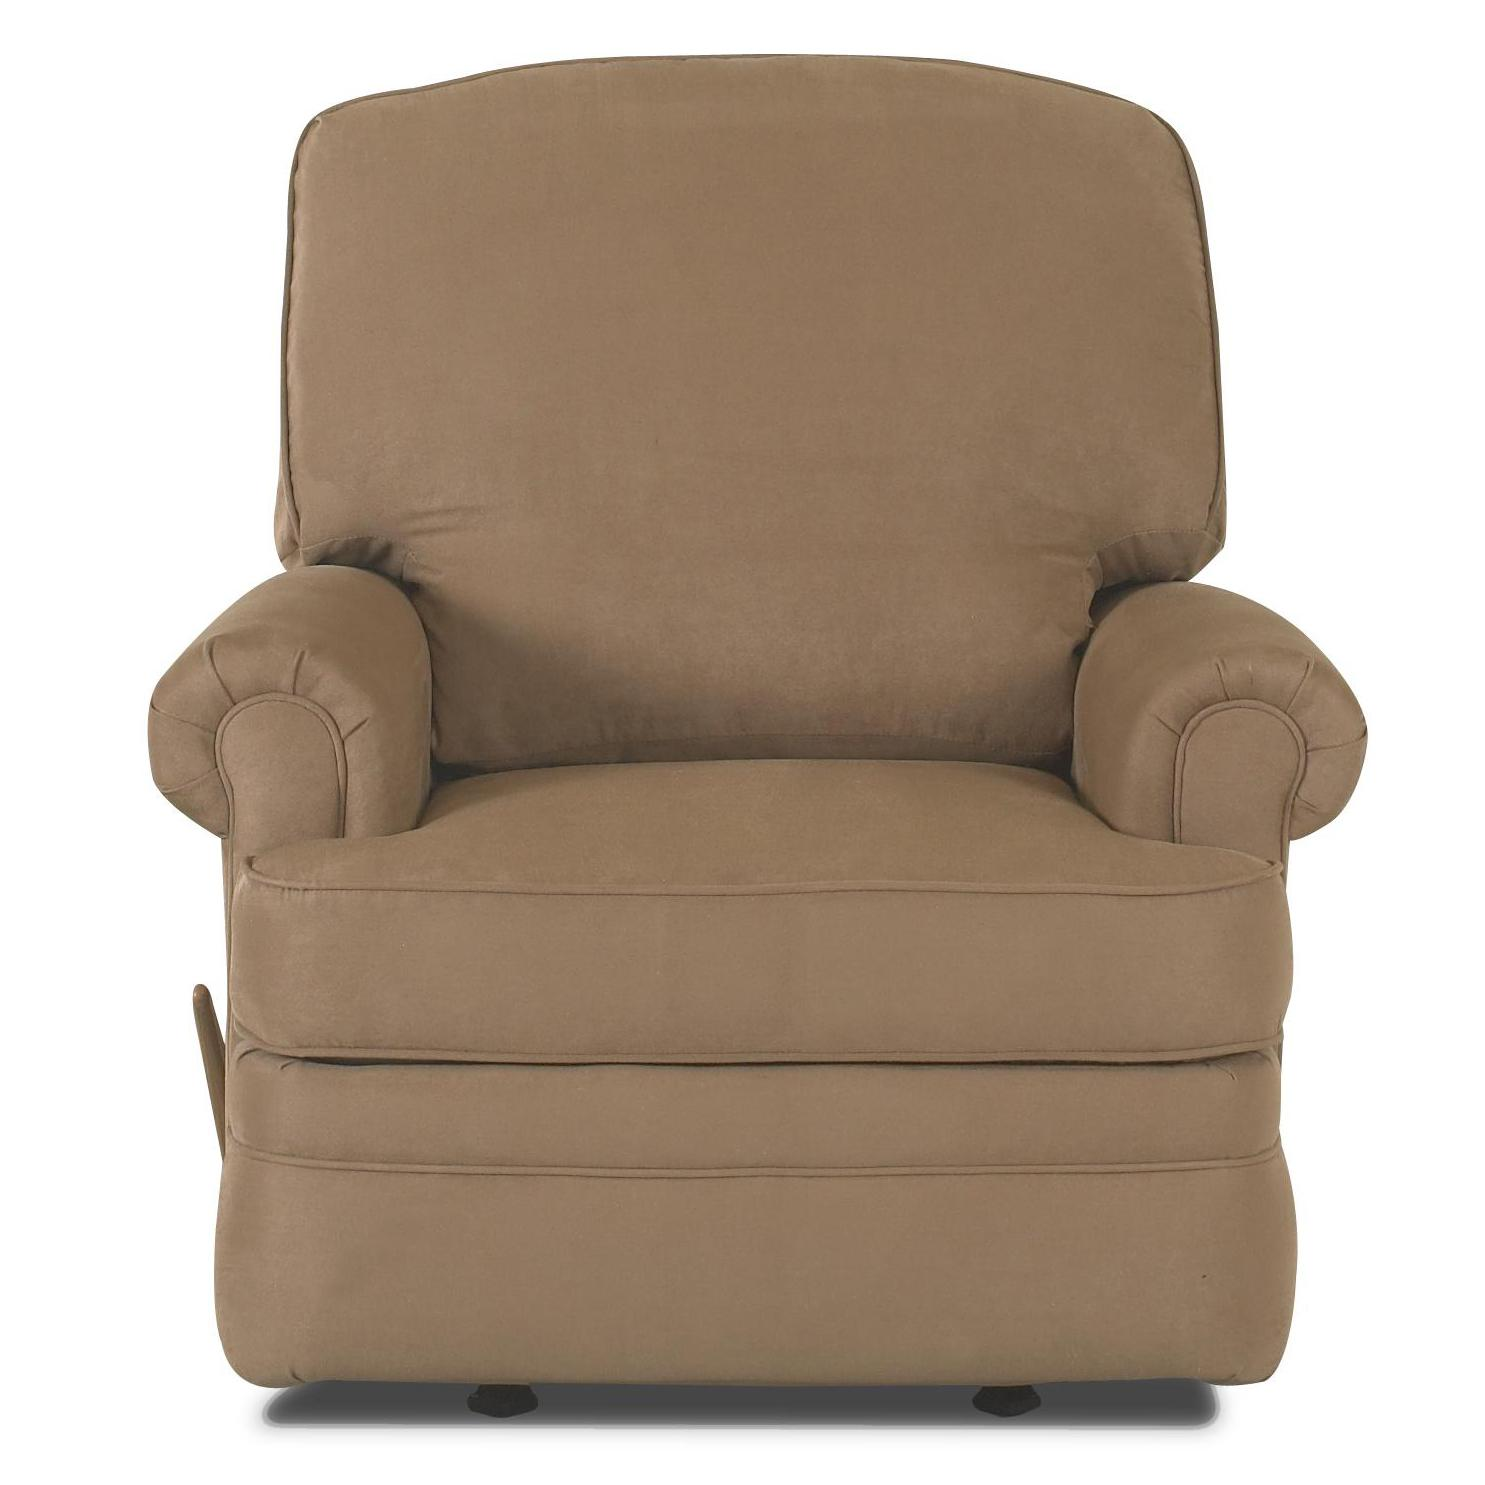 Recliner Rocking Chair Klaussner Recliners 20103h Rrc Stanley Rocking Reclining